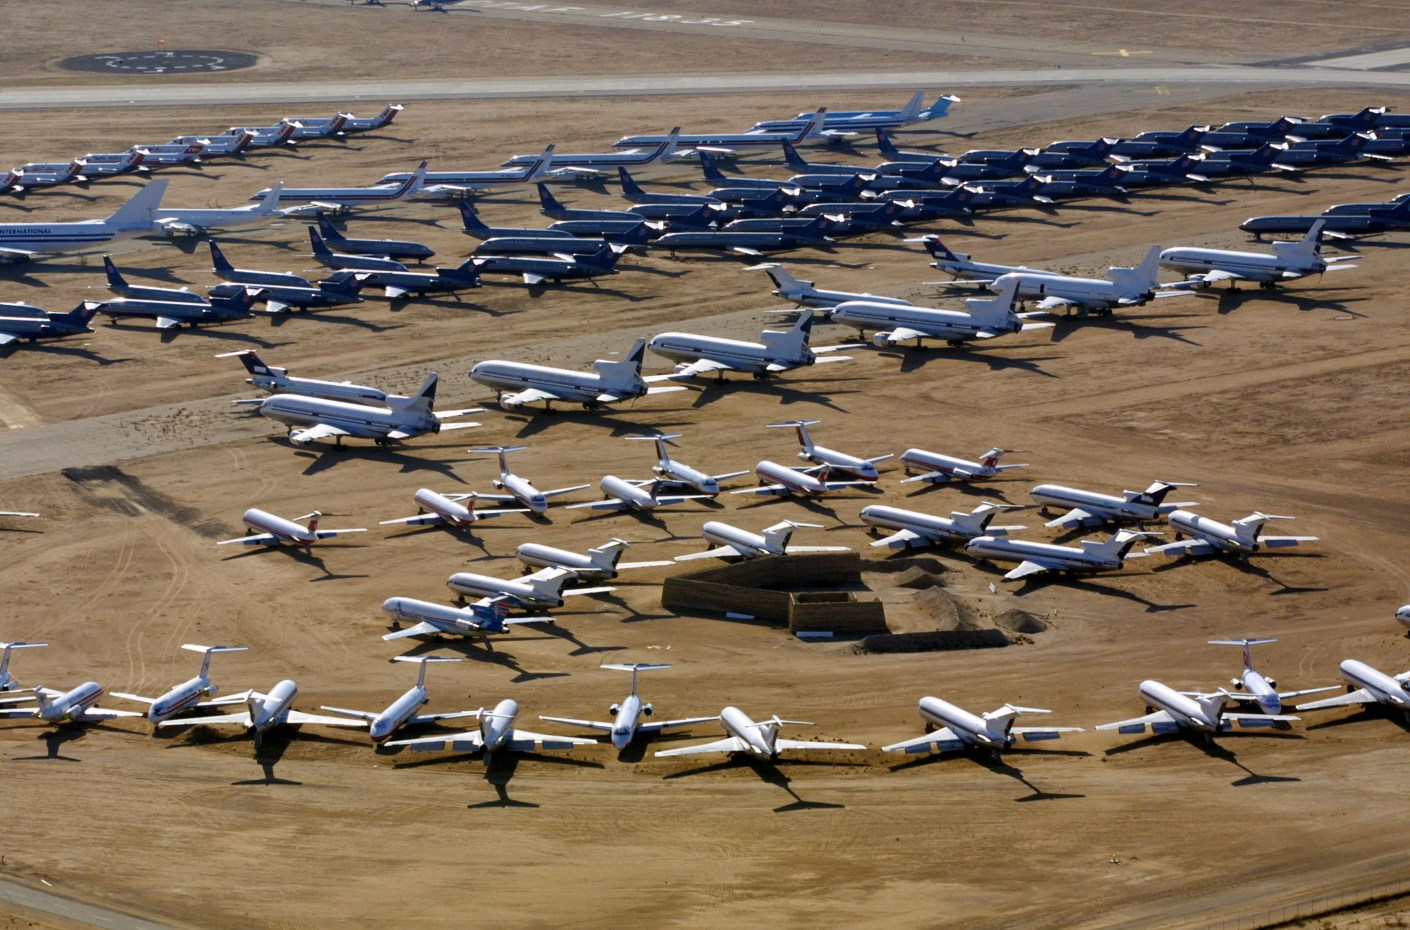 Victorville-Southern California Logistics Airport as seen in 2001 (Photo by Mike Fiala/Getty Images)